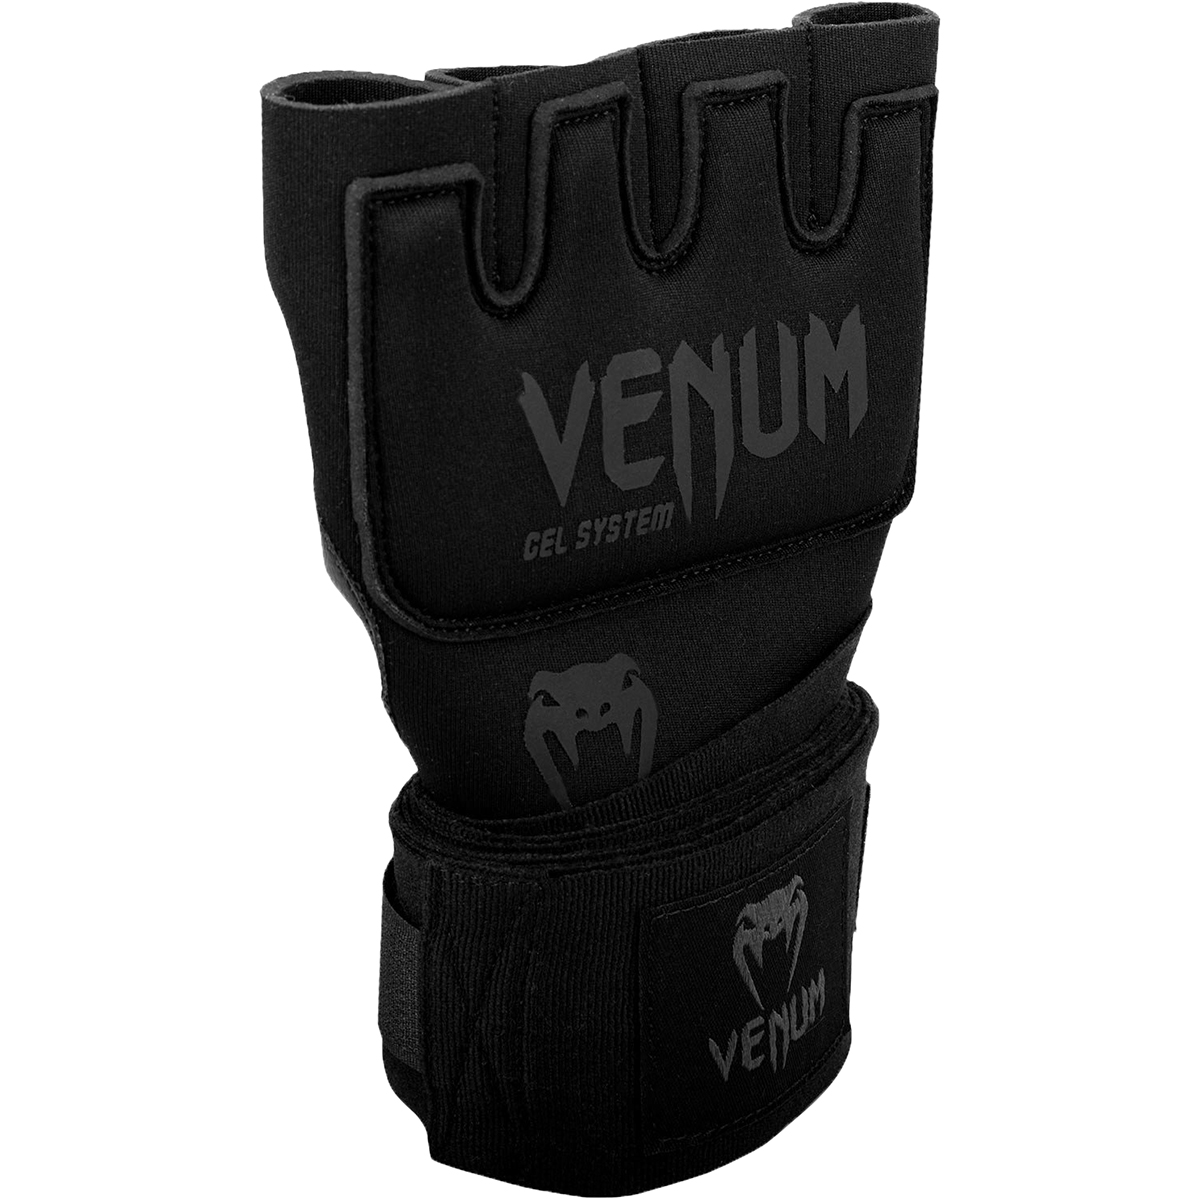 Venum-Kontact-Protective-Shock-Absorbing-Gel-MMA-Glove-Wraps thumbnail 3